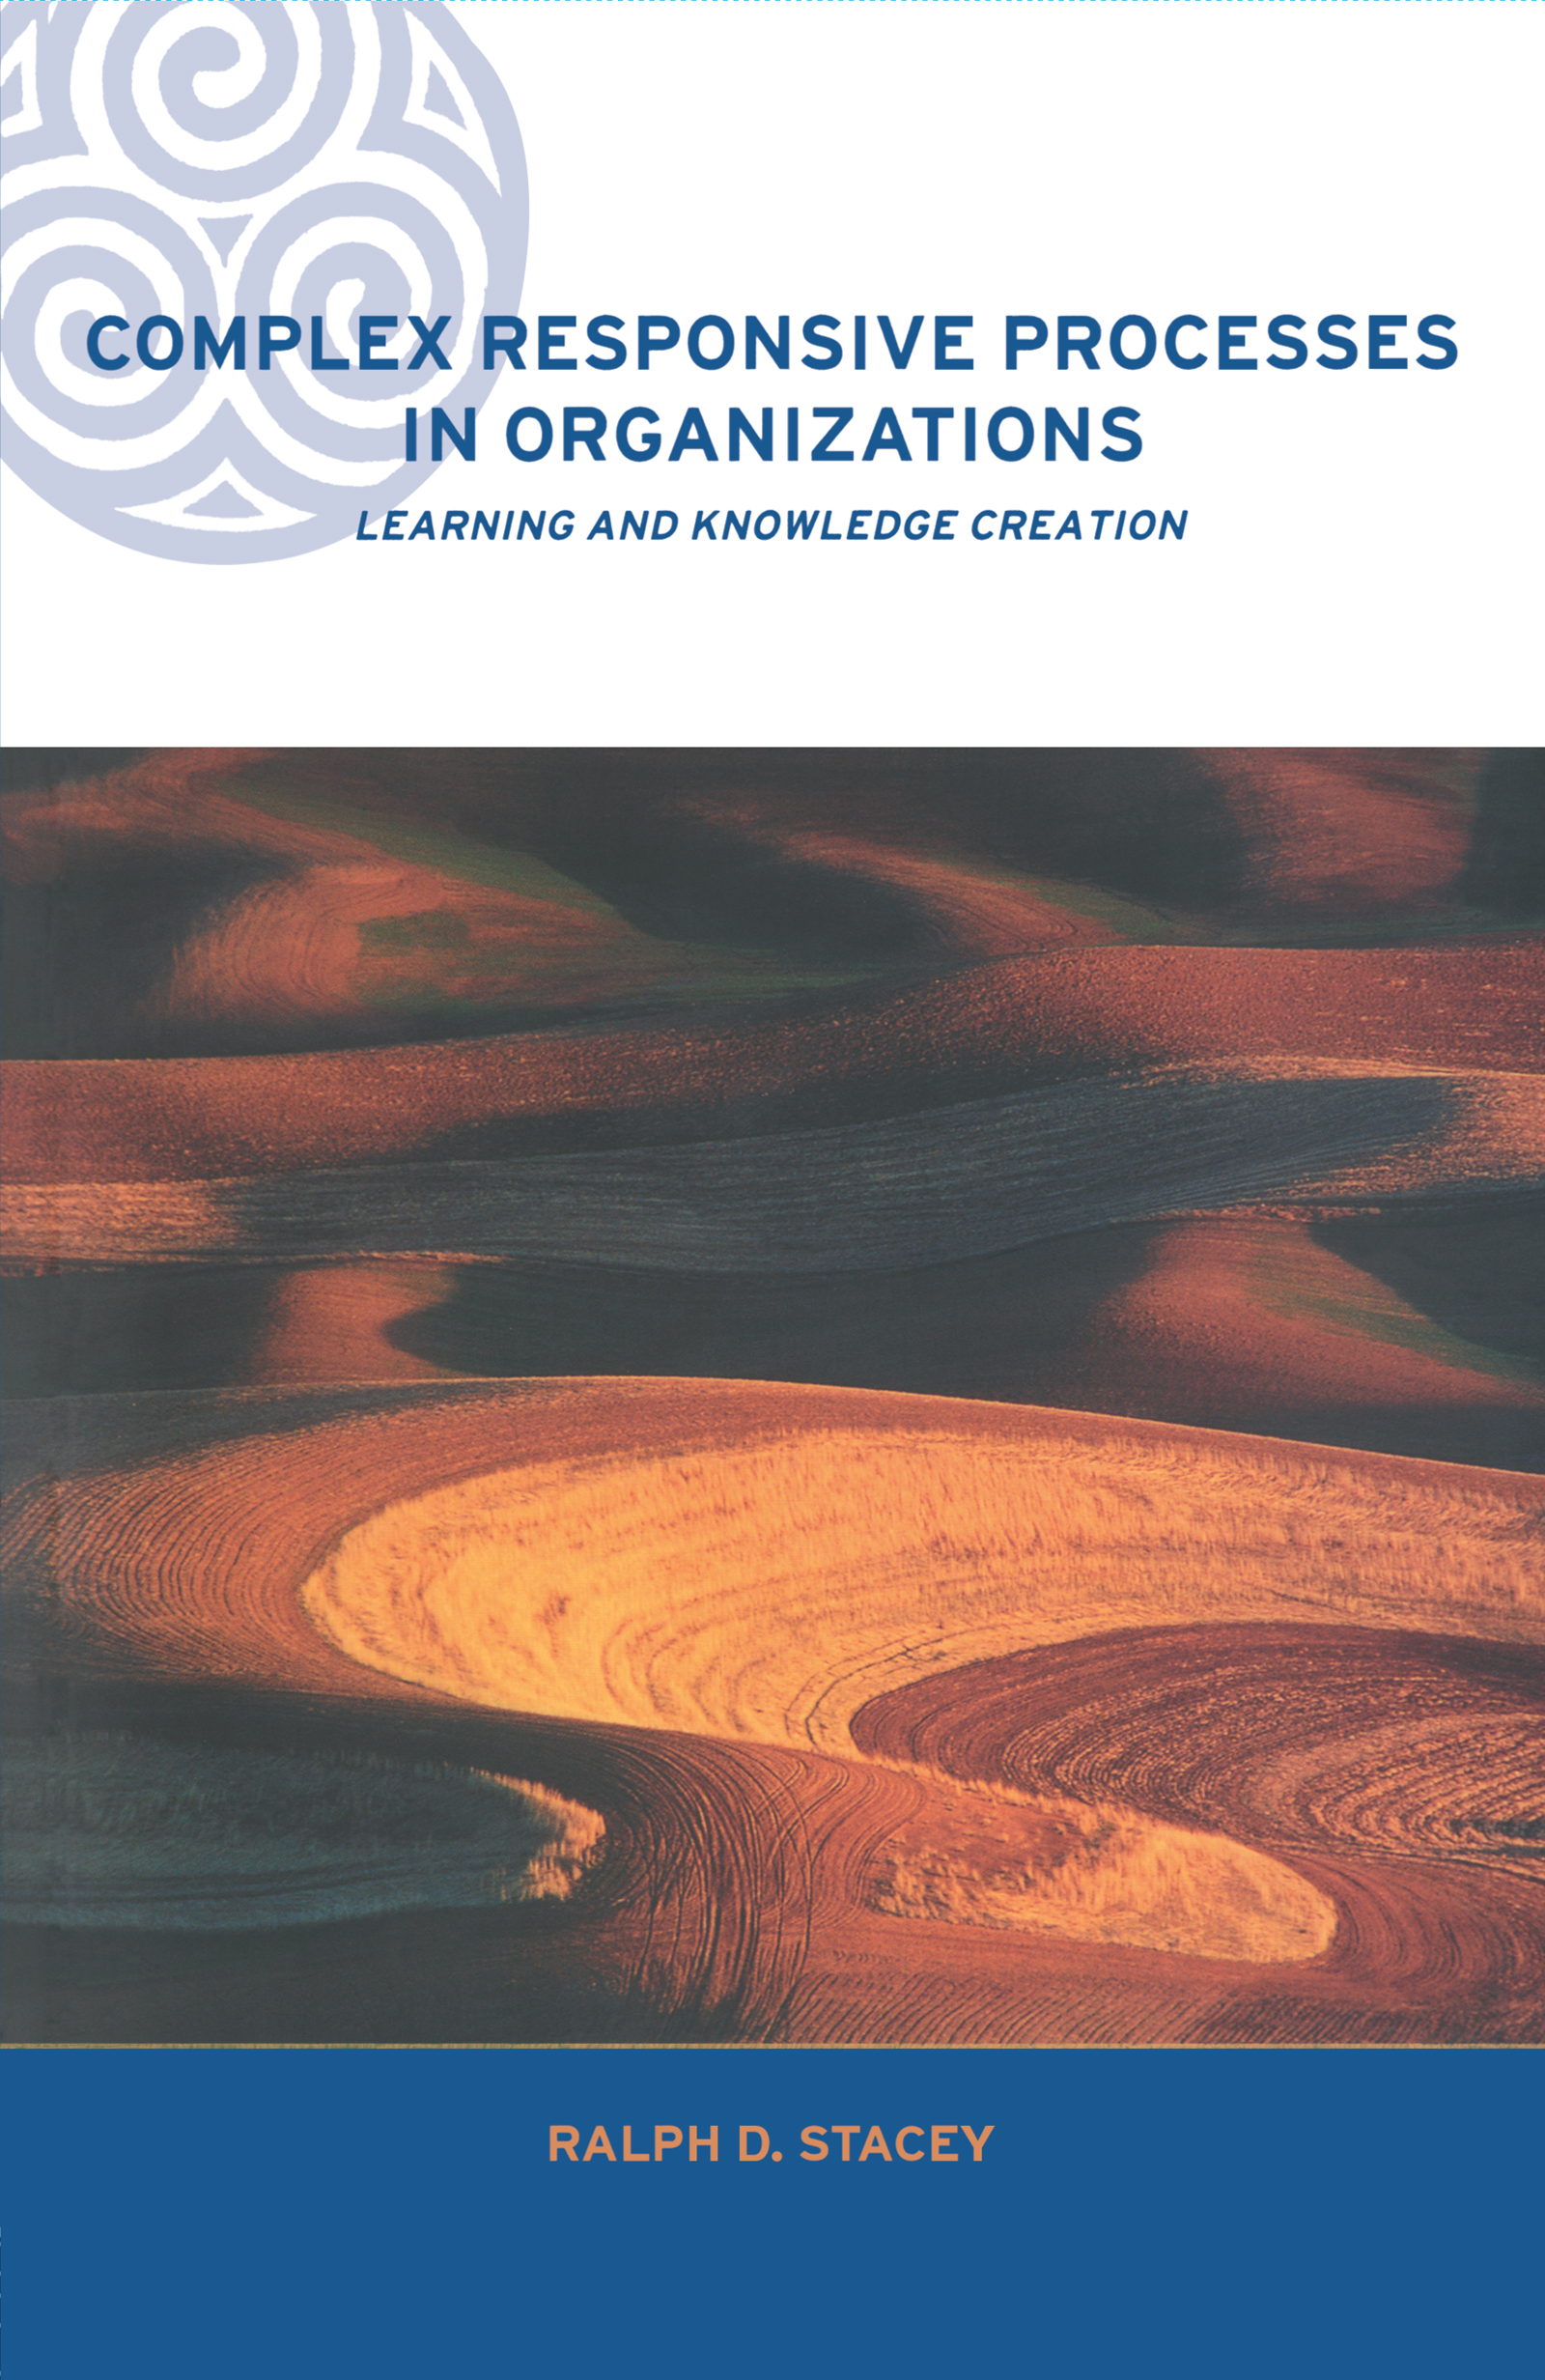 Download Ebook Complex Responsive Processes in Organizations by Ralph Stacey Pdf